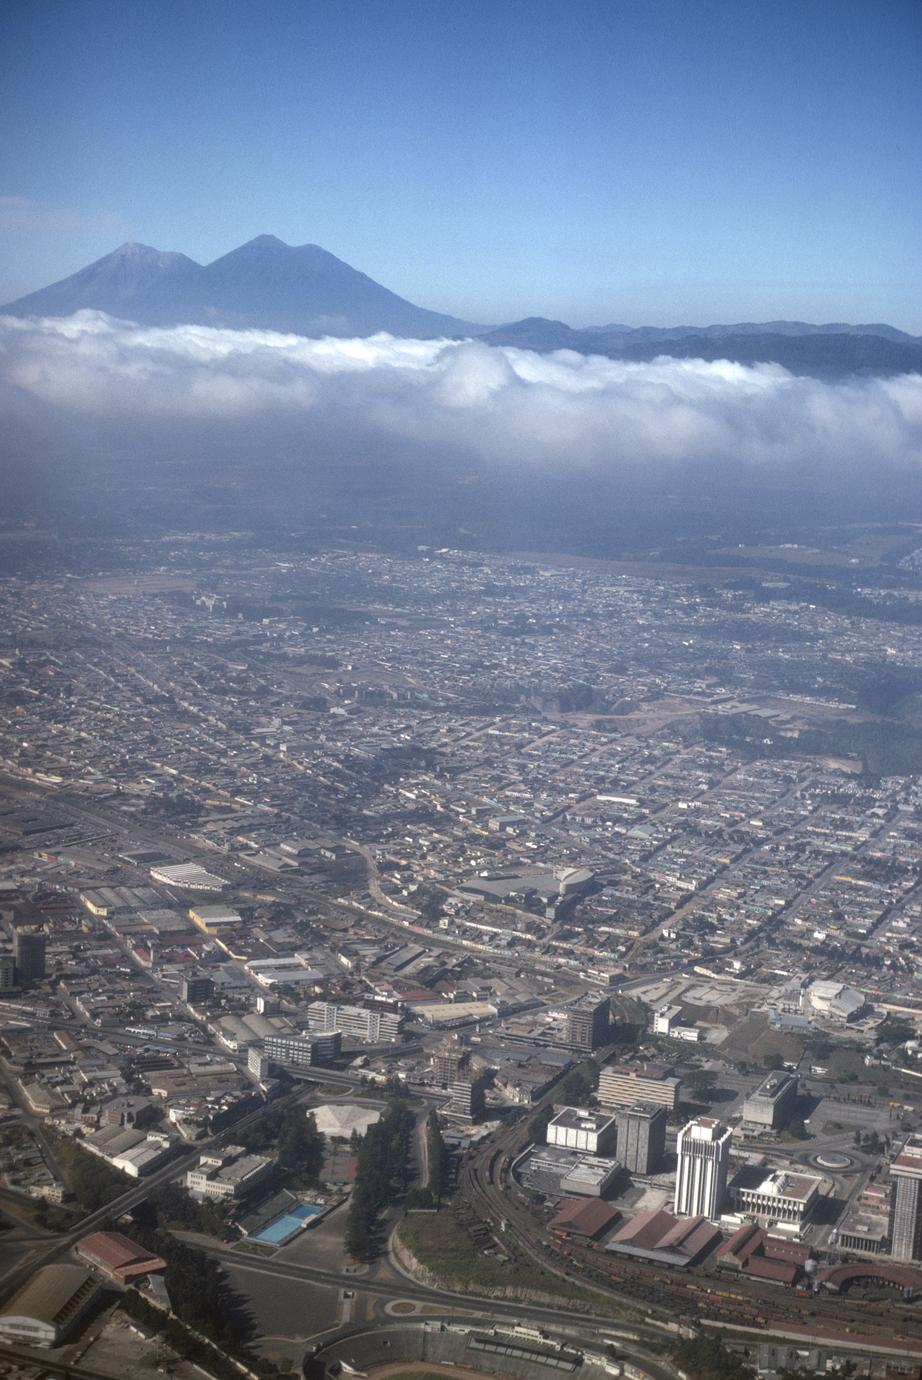 Guatemala City. Puebla down below